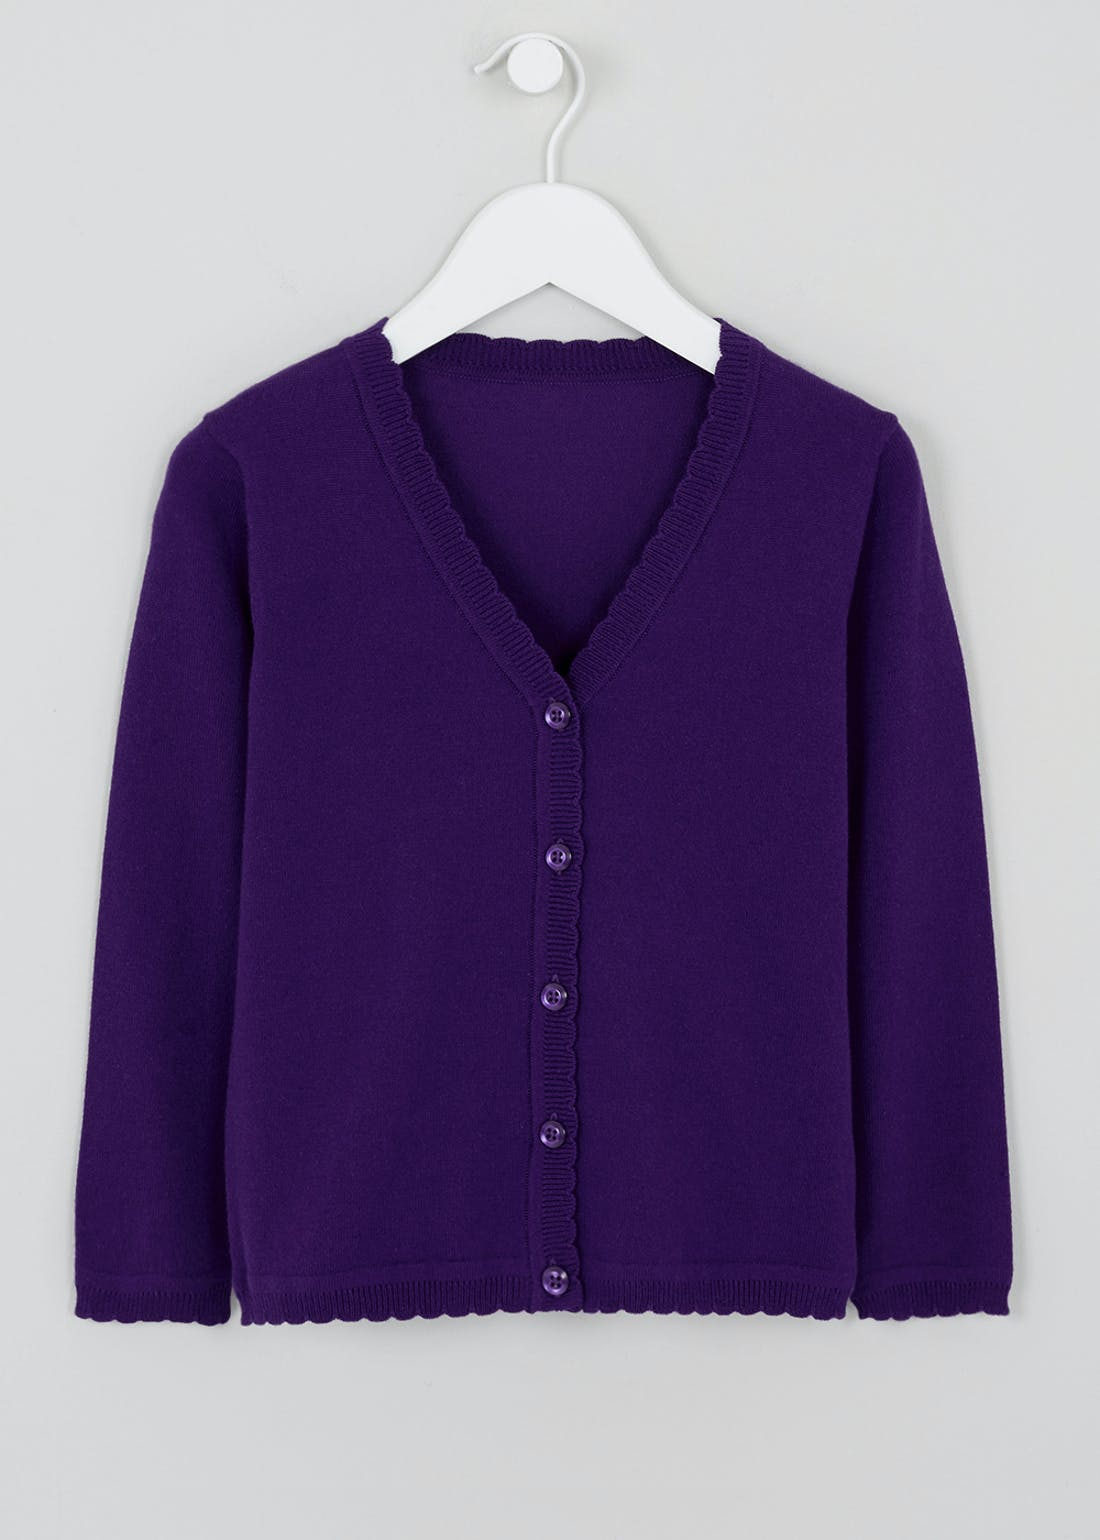 Girls Purple Scallop Edge School Cardigan (3-13yrs)